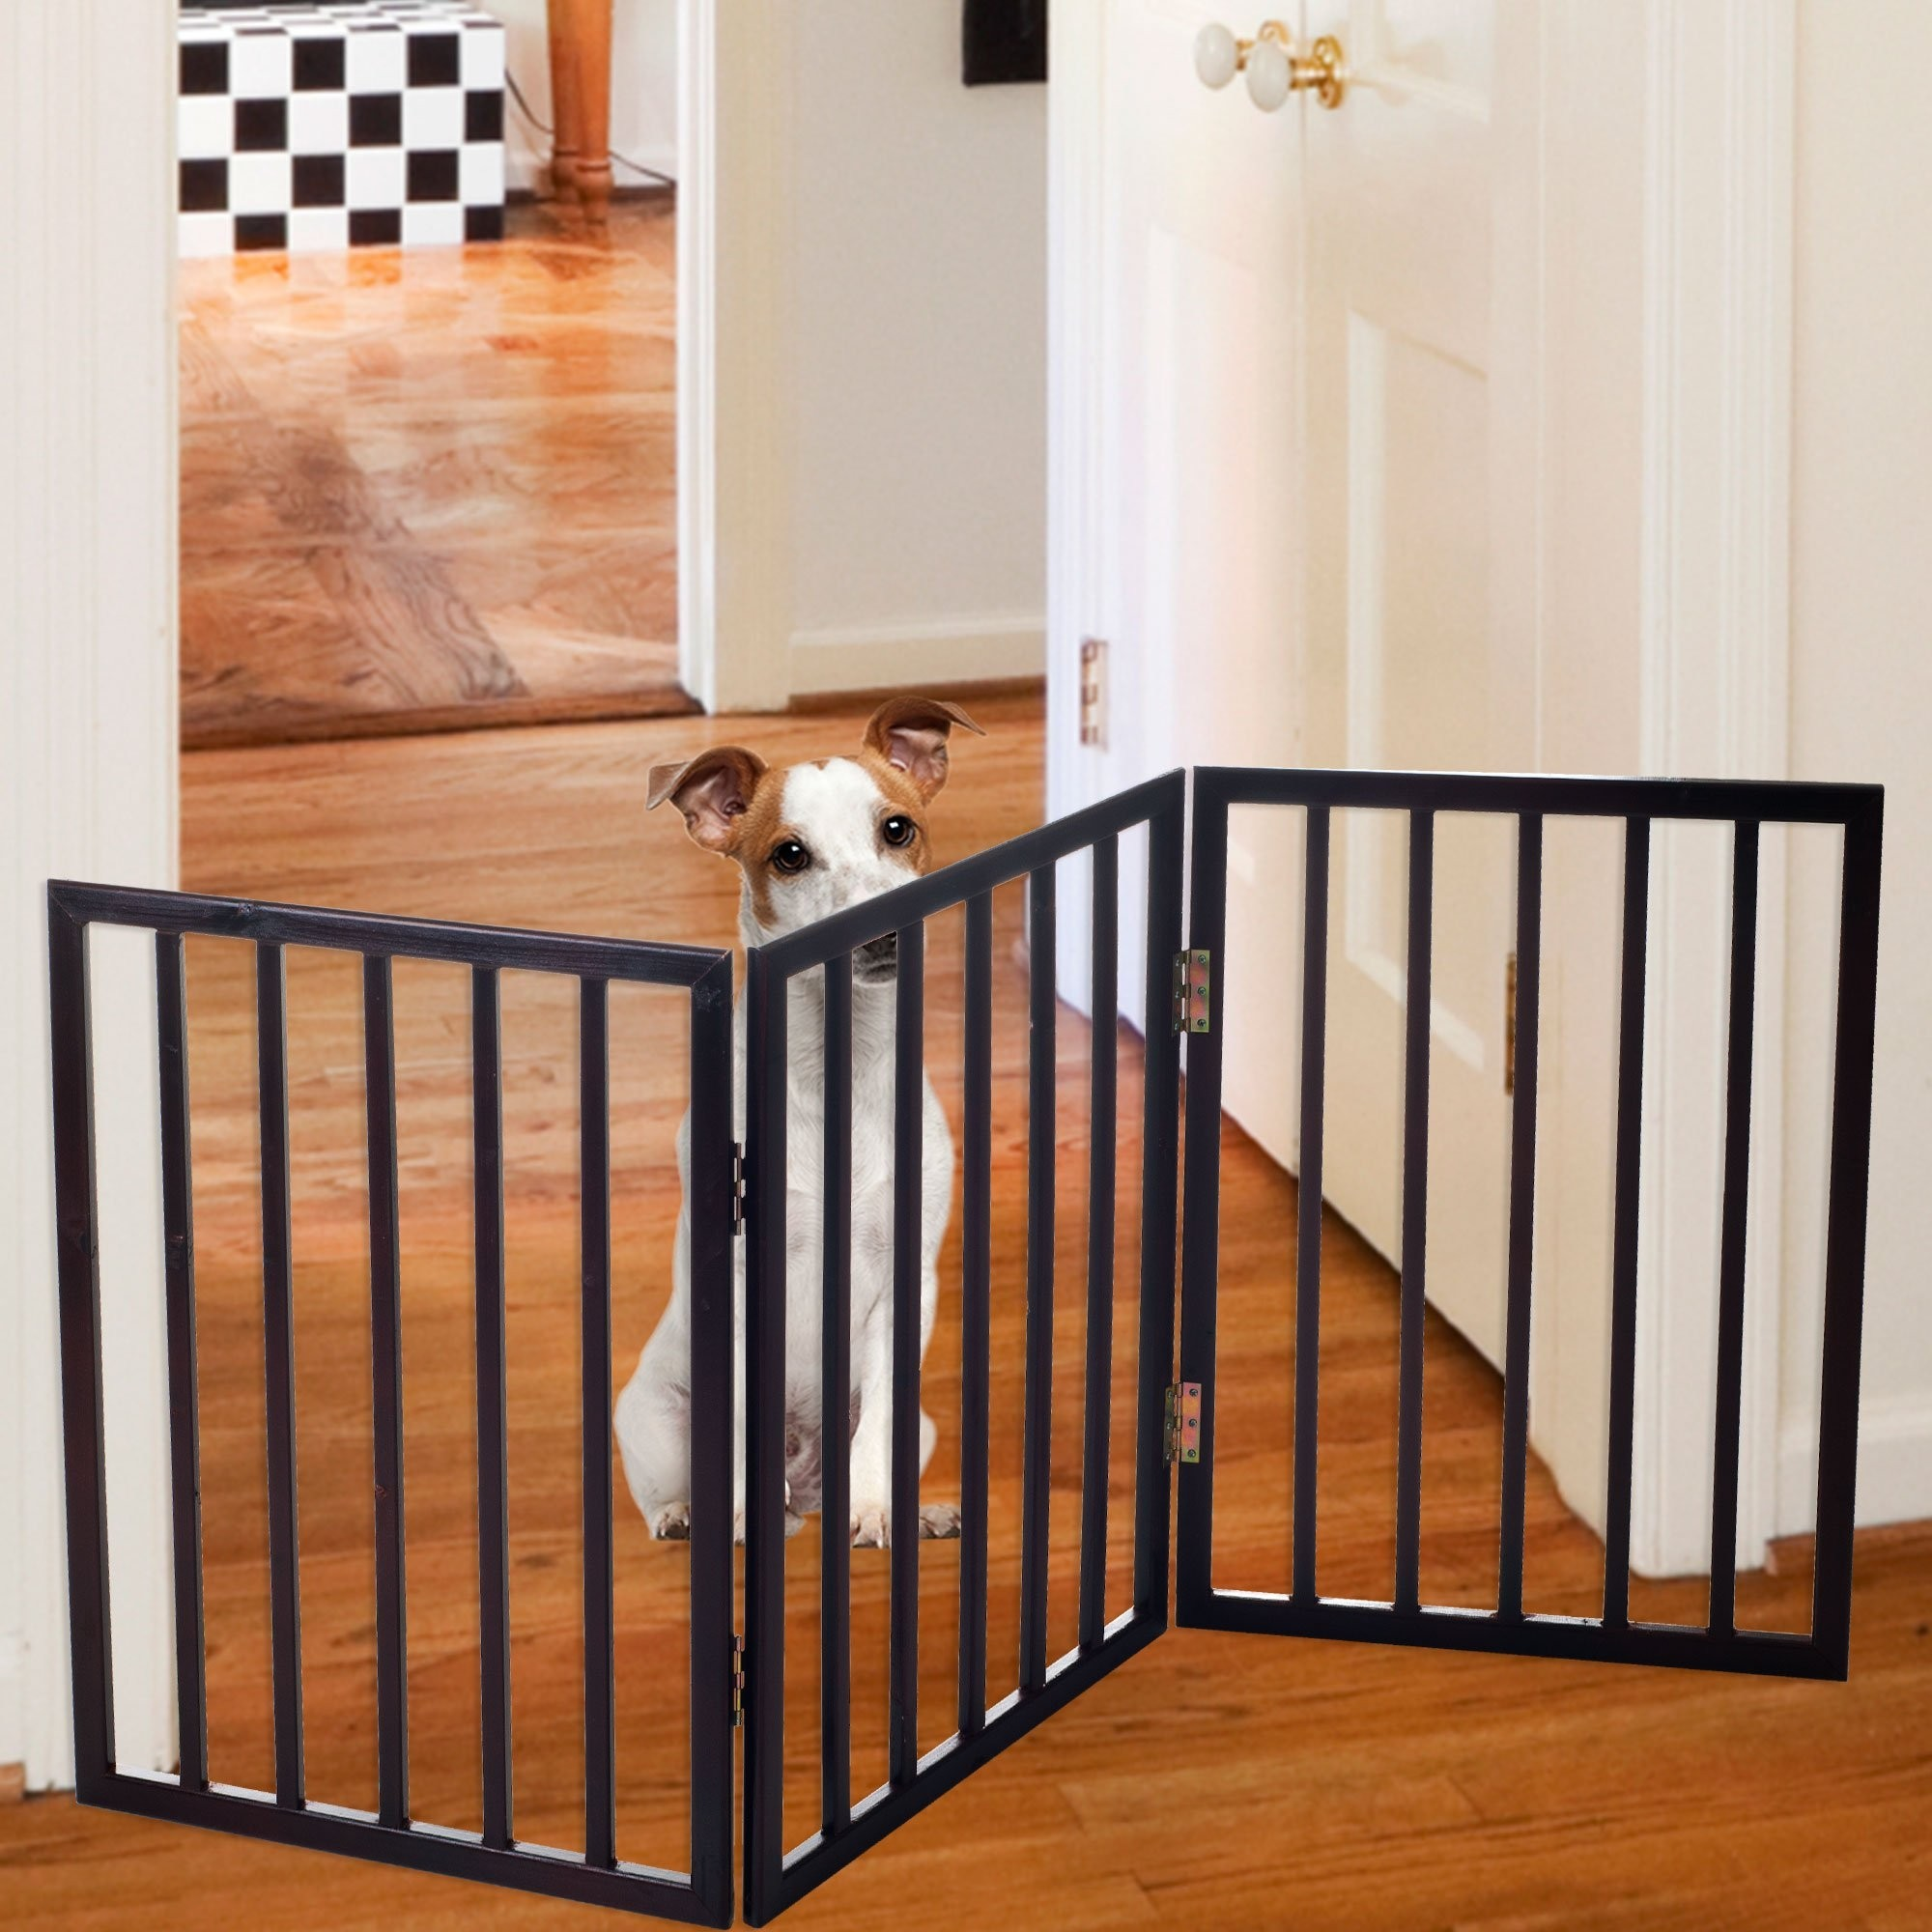 Easy Up Folding Pet Gate